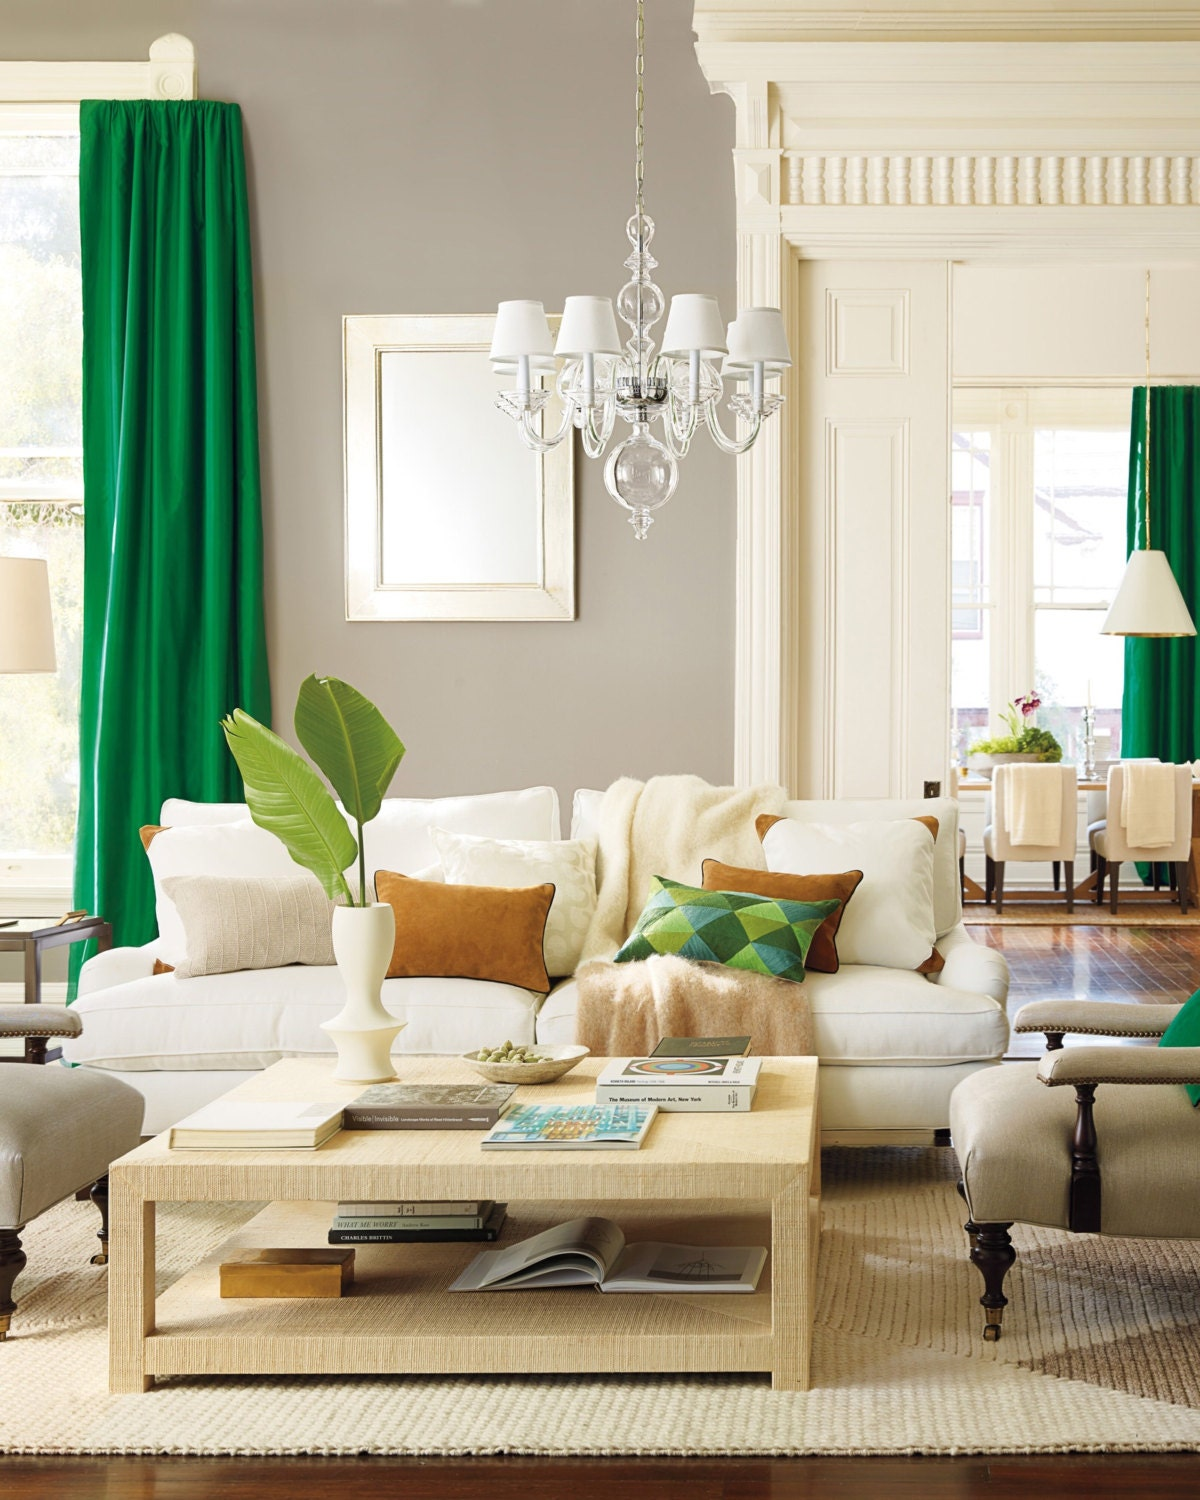 Kelly Green Curtains With Light Gray Grasscloth Walls